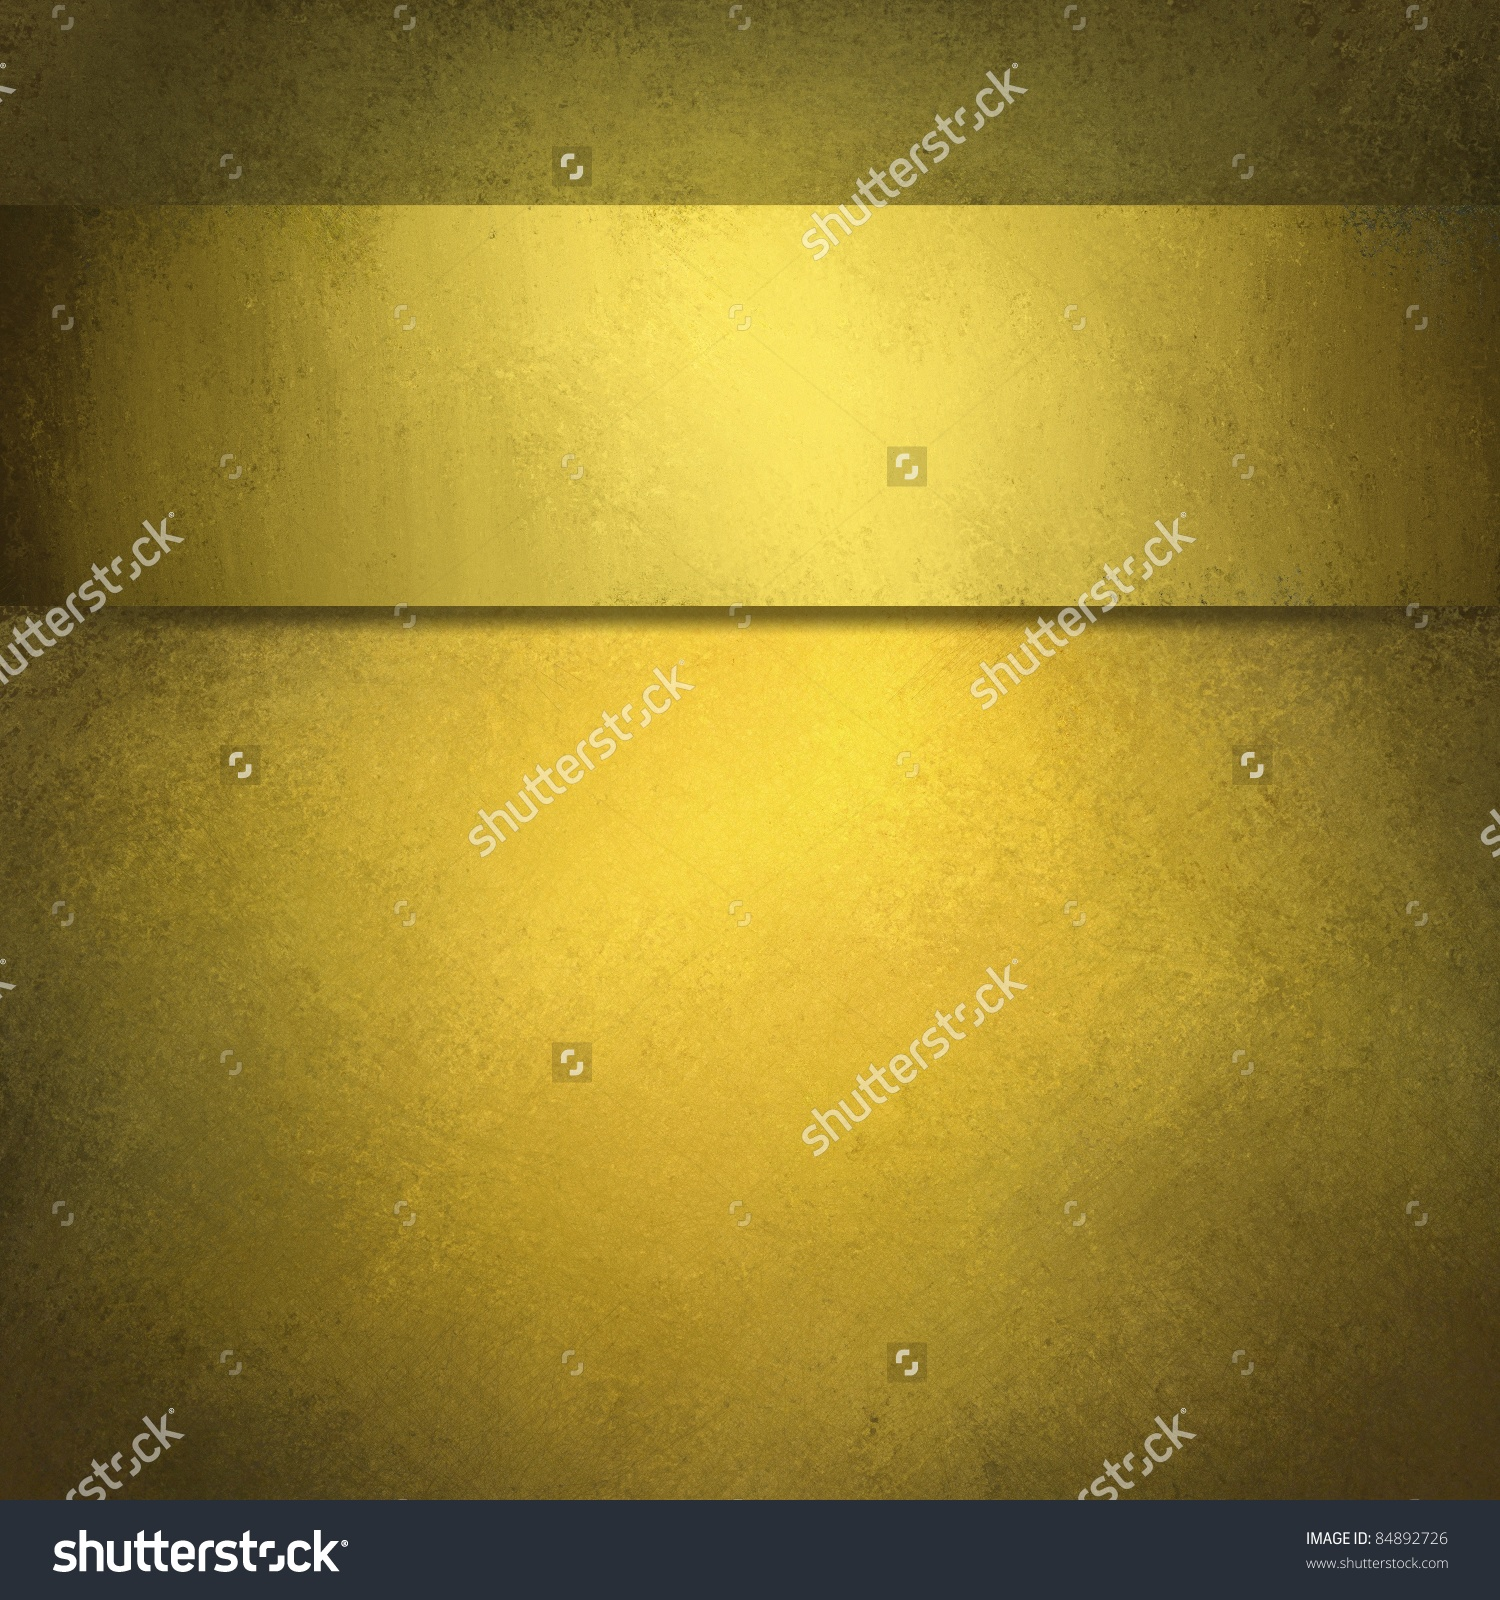 Burnished Gold Background With Vintage Grunge Texture And.